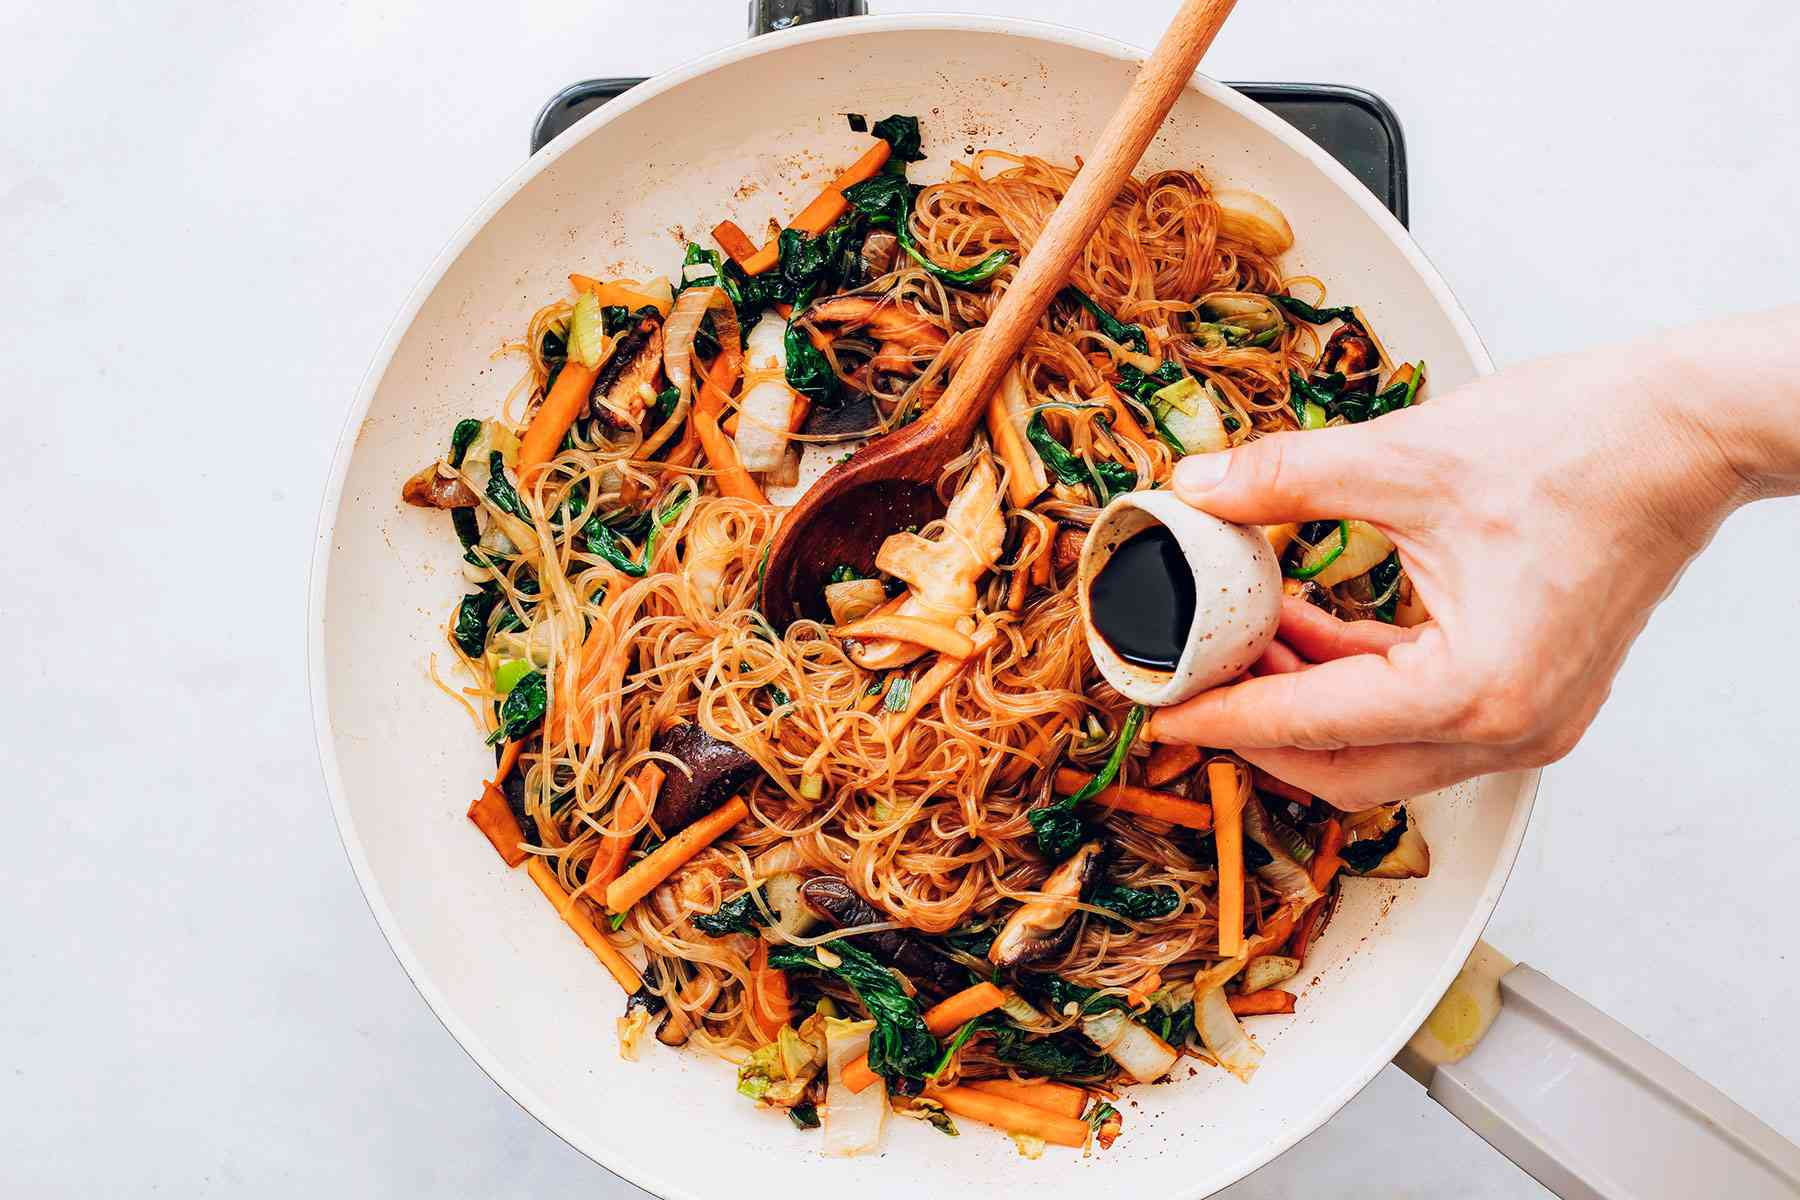 Korean Stir-Fried Noodles (Jap Chae or Chap Chae) cooking in a pan